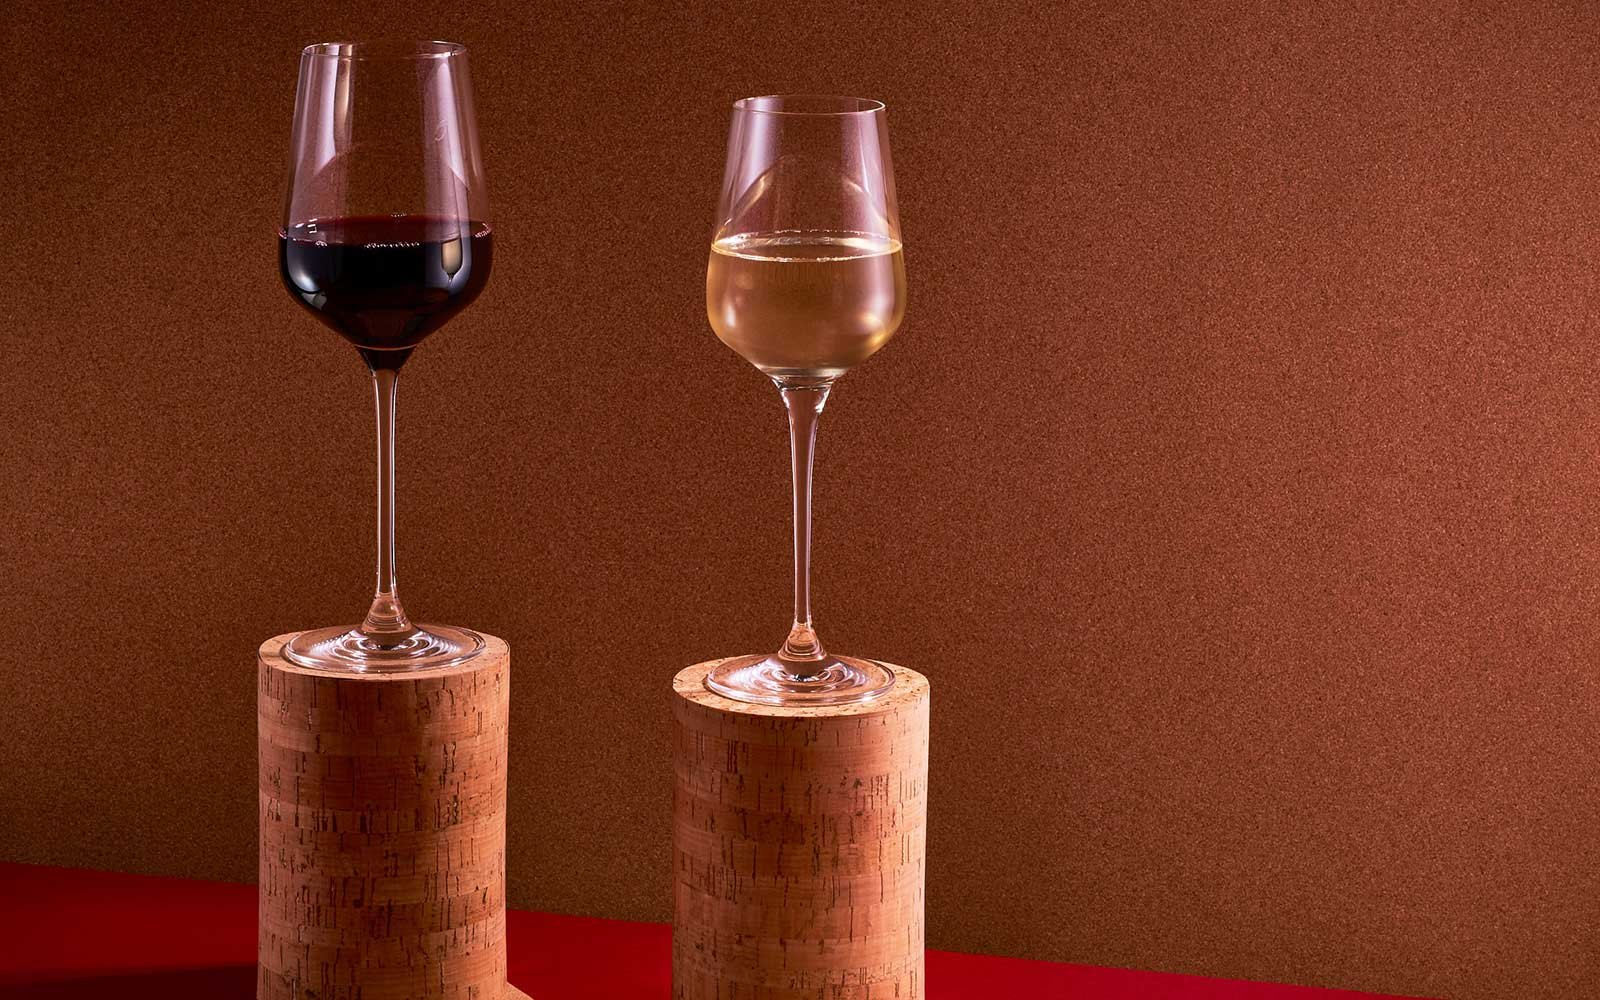 Pop or Screw? Scientists to make sense of the cork vs screwcap debate, and invite the public to take part